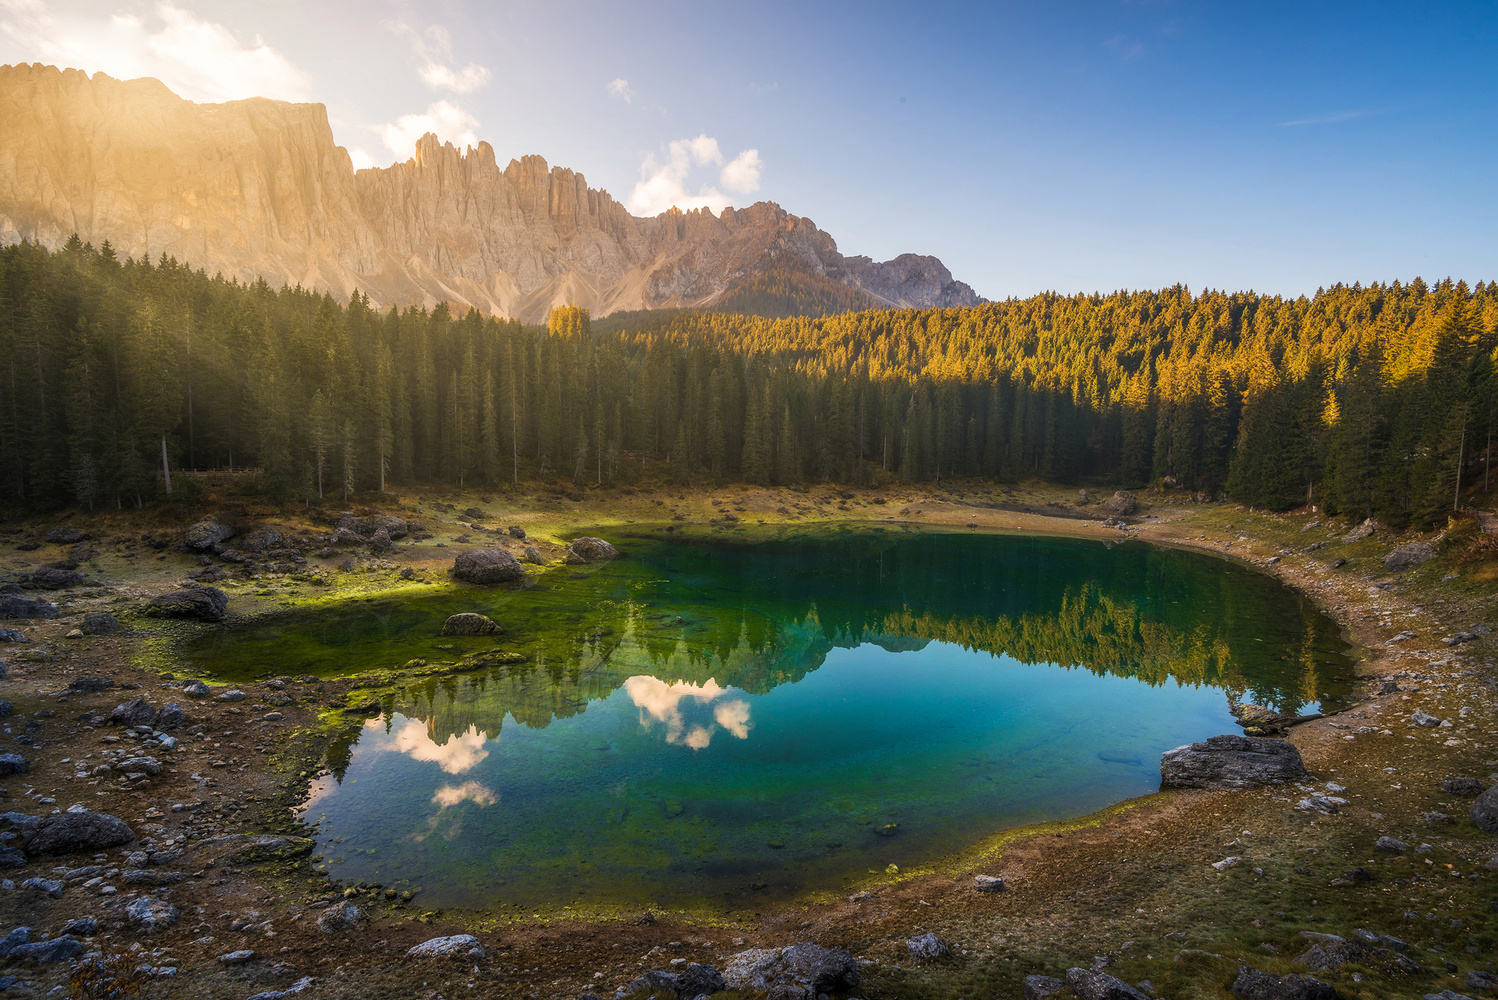 Lago di Carezza by Philip Slotte